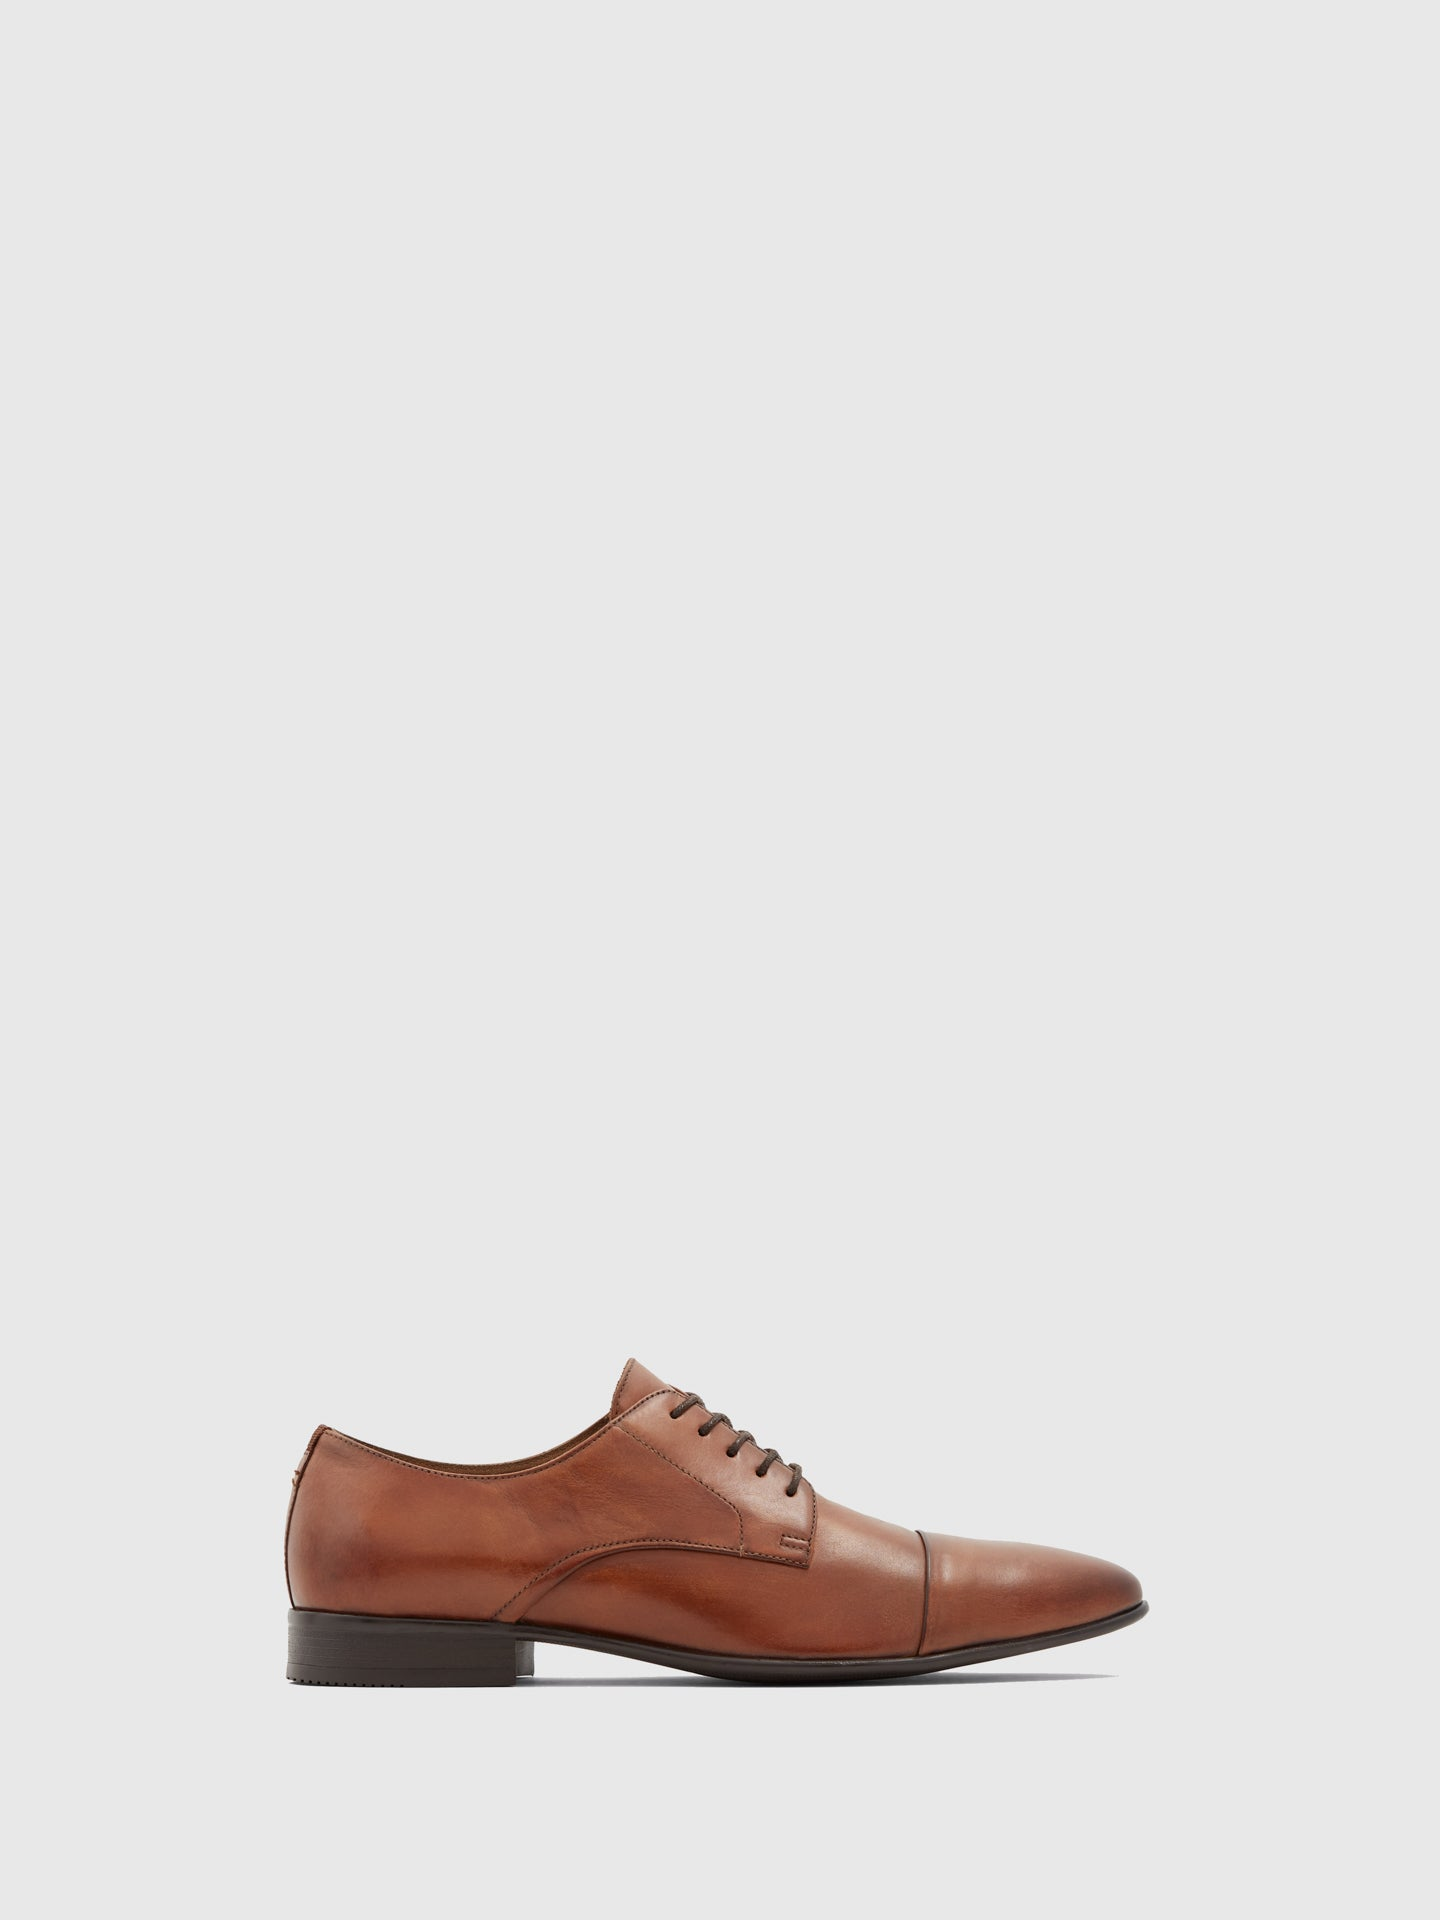 Aldo Brown Lace-up Shoes